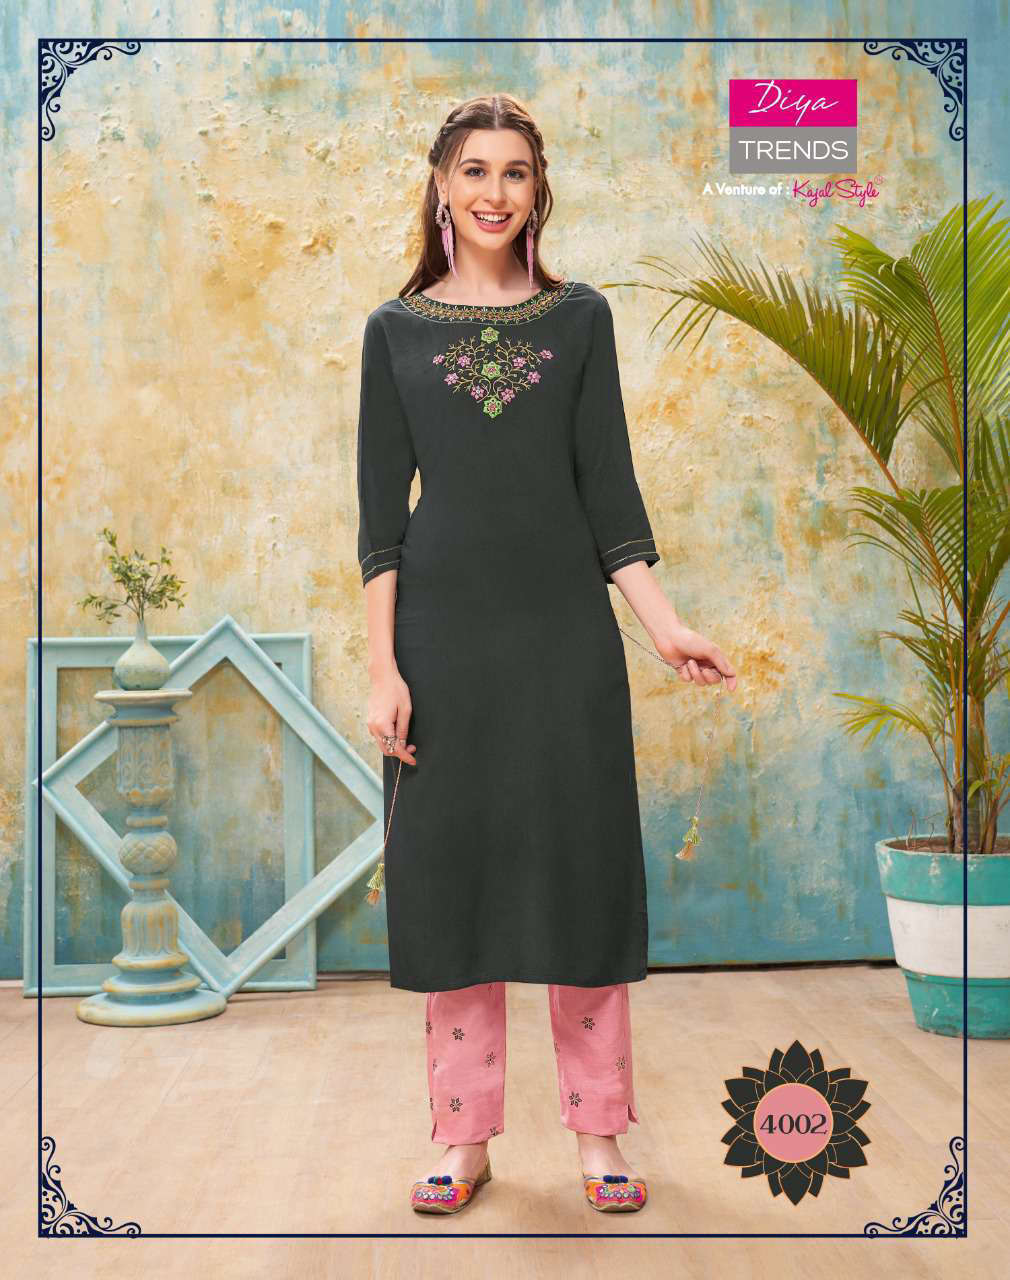 Diya Trends Forever Vol 4 by Kajal Style Kurti with Pant Wholesale Catalog 12 Pcs 3 - Diya Trends Forever Vol 4 by Kajal Style Kurti with Pant Wholesale Catalog 12 Pcs